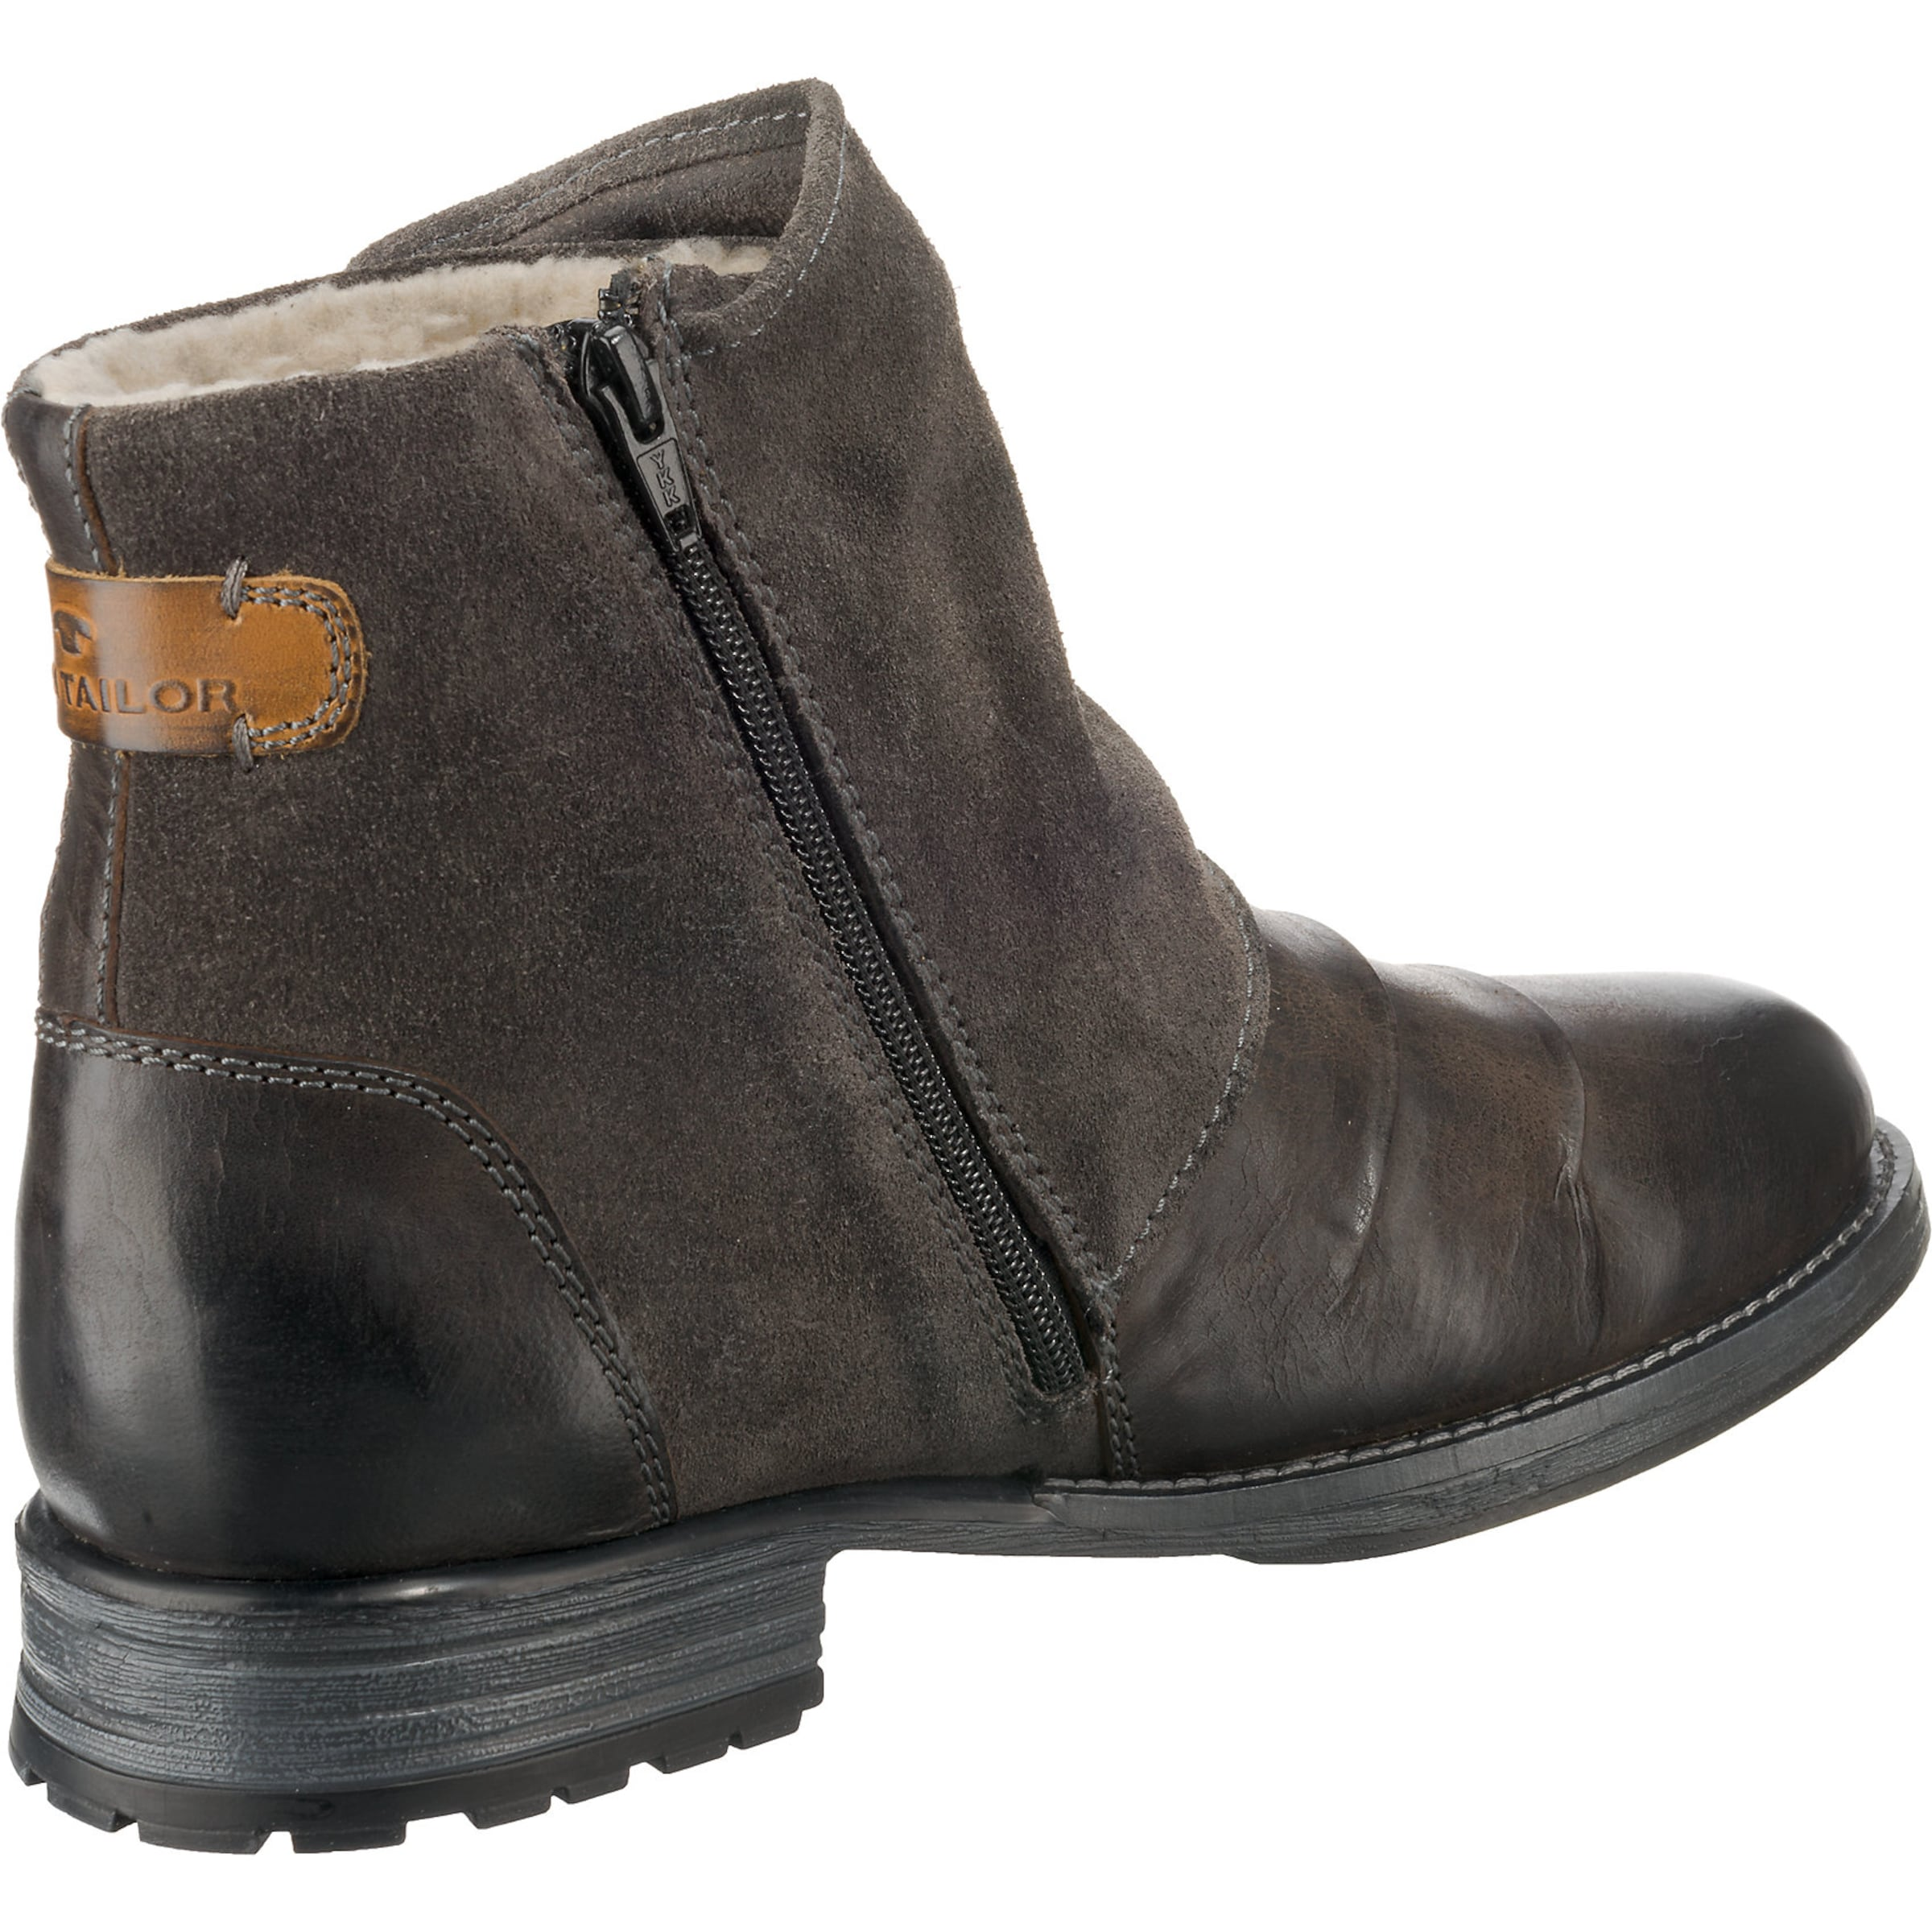 Kastanienbraun Tailor Tom Biker Boots In 4qjL5Rc3SA